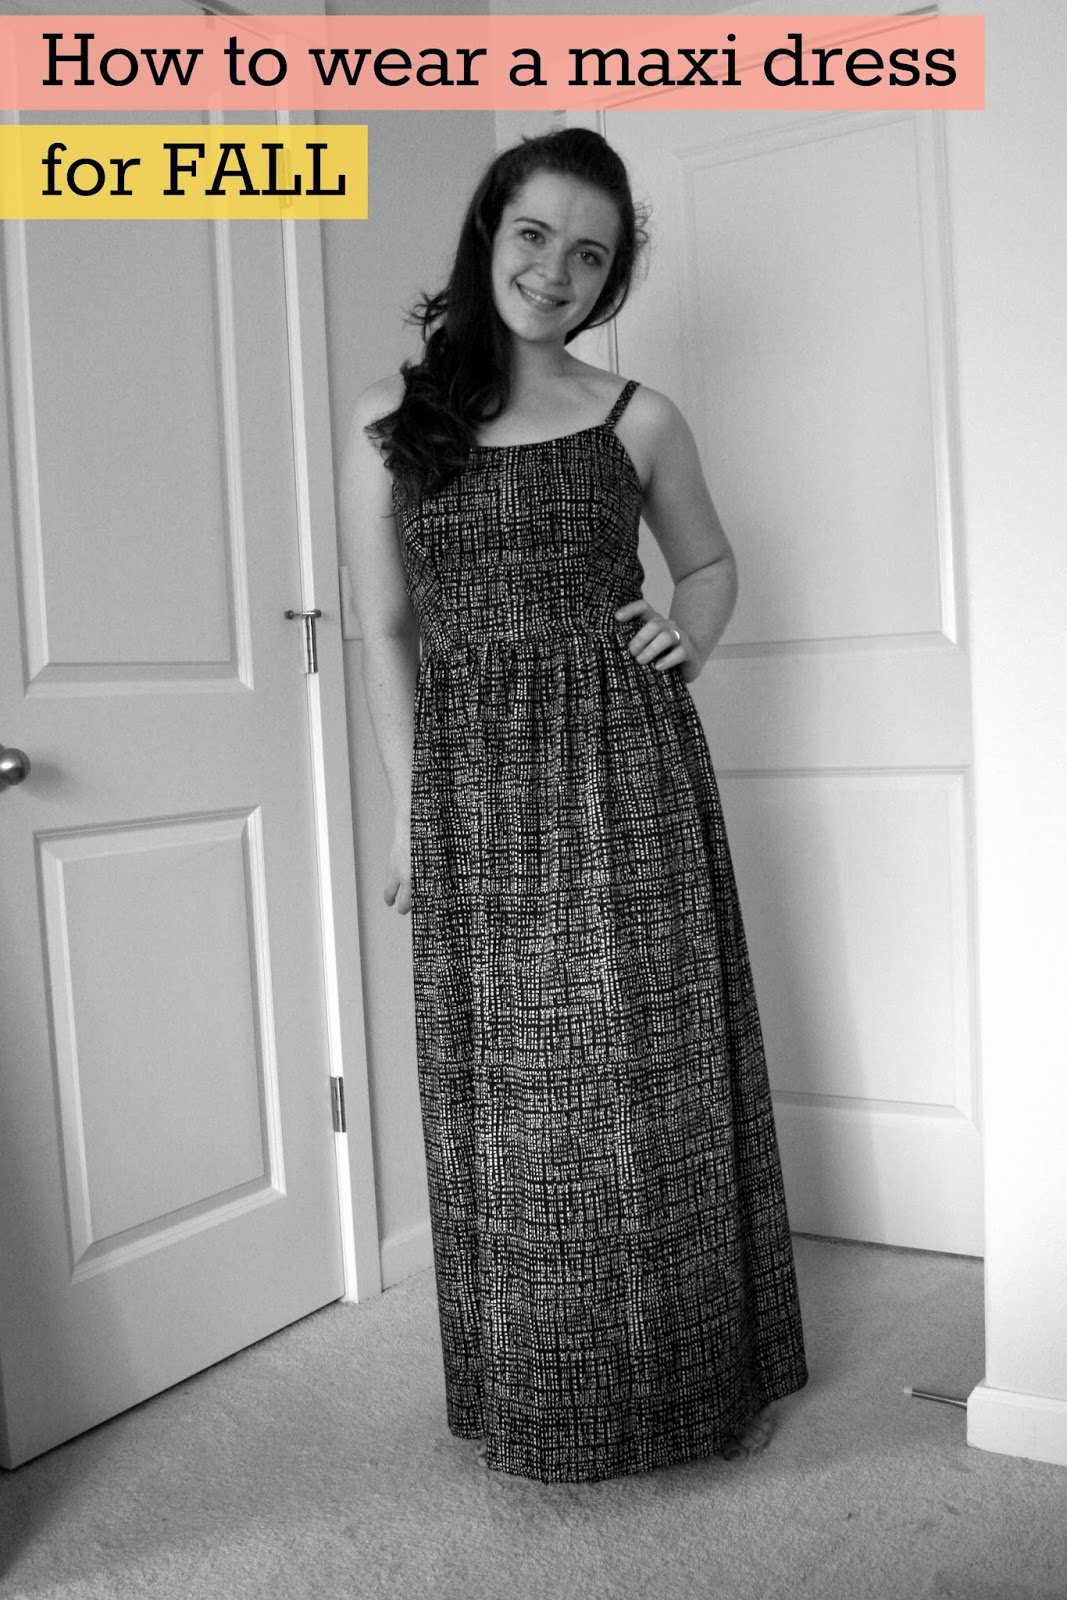 Just made a black maxi dress--can it work for fall ...